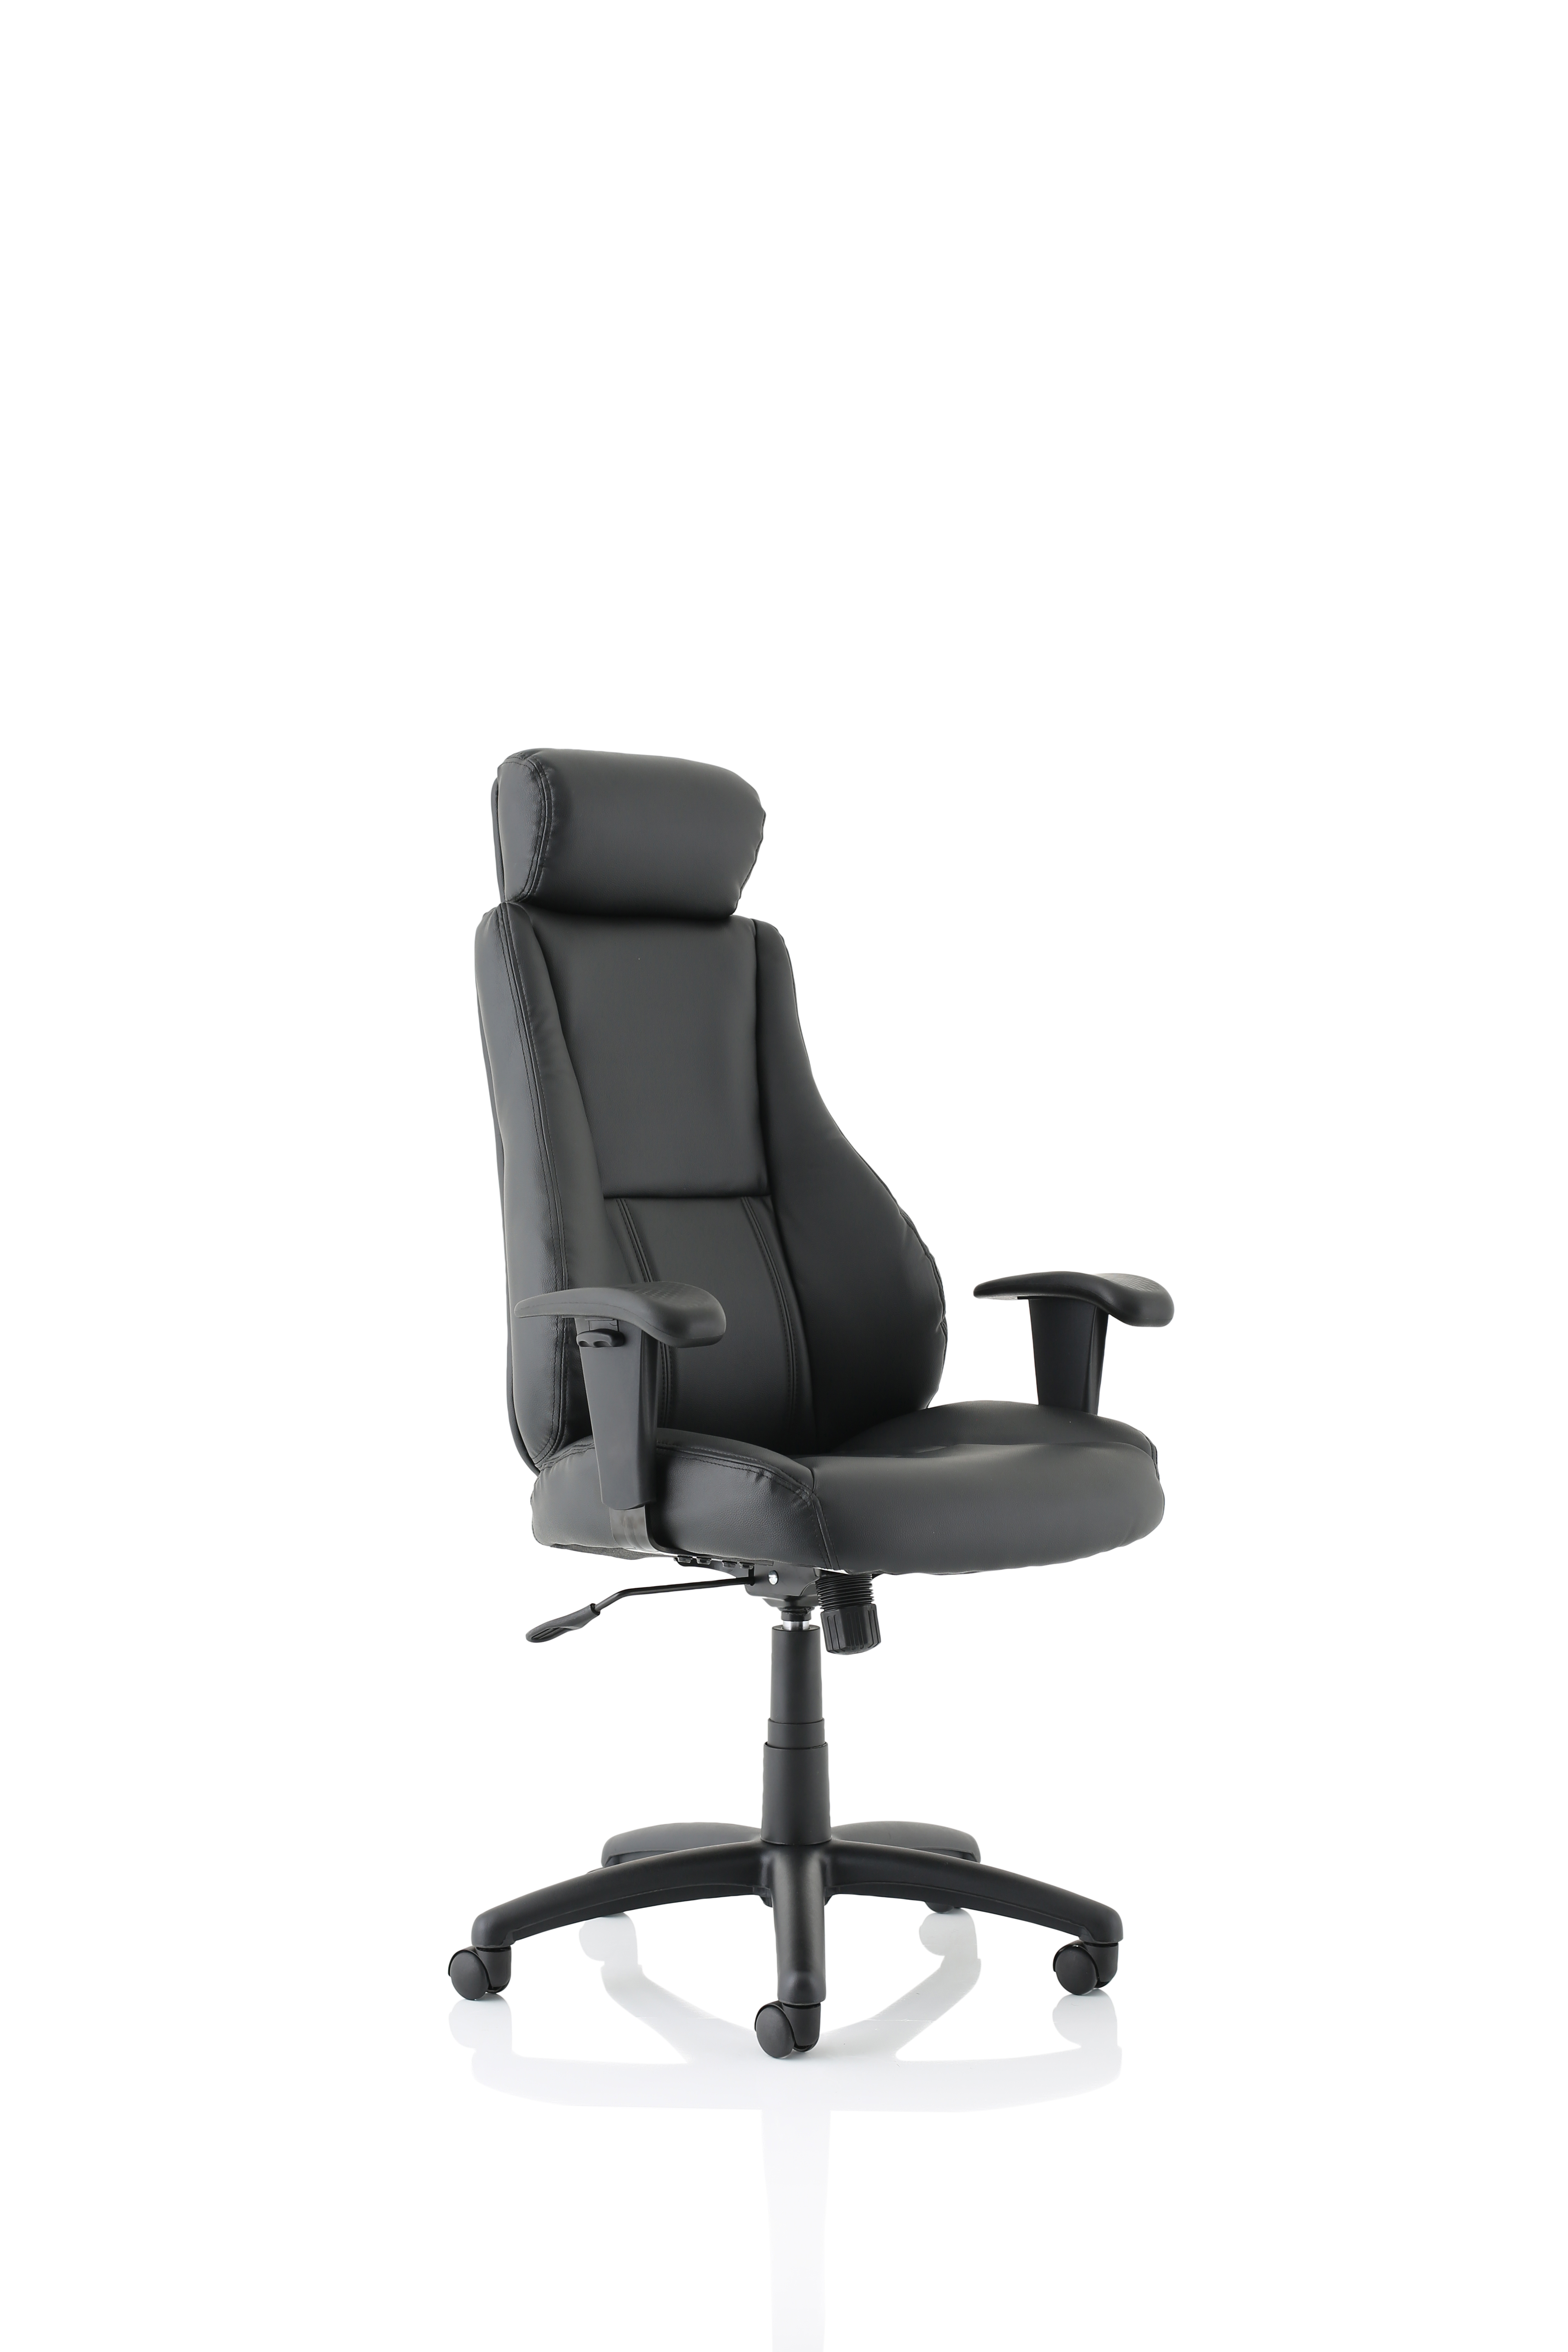 Executive Chairs Winsor Black Leather Chair With Headrest EX000213